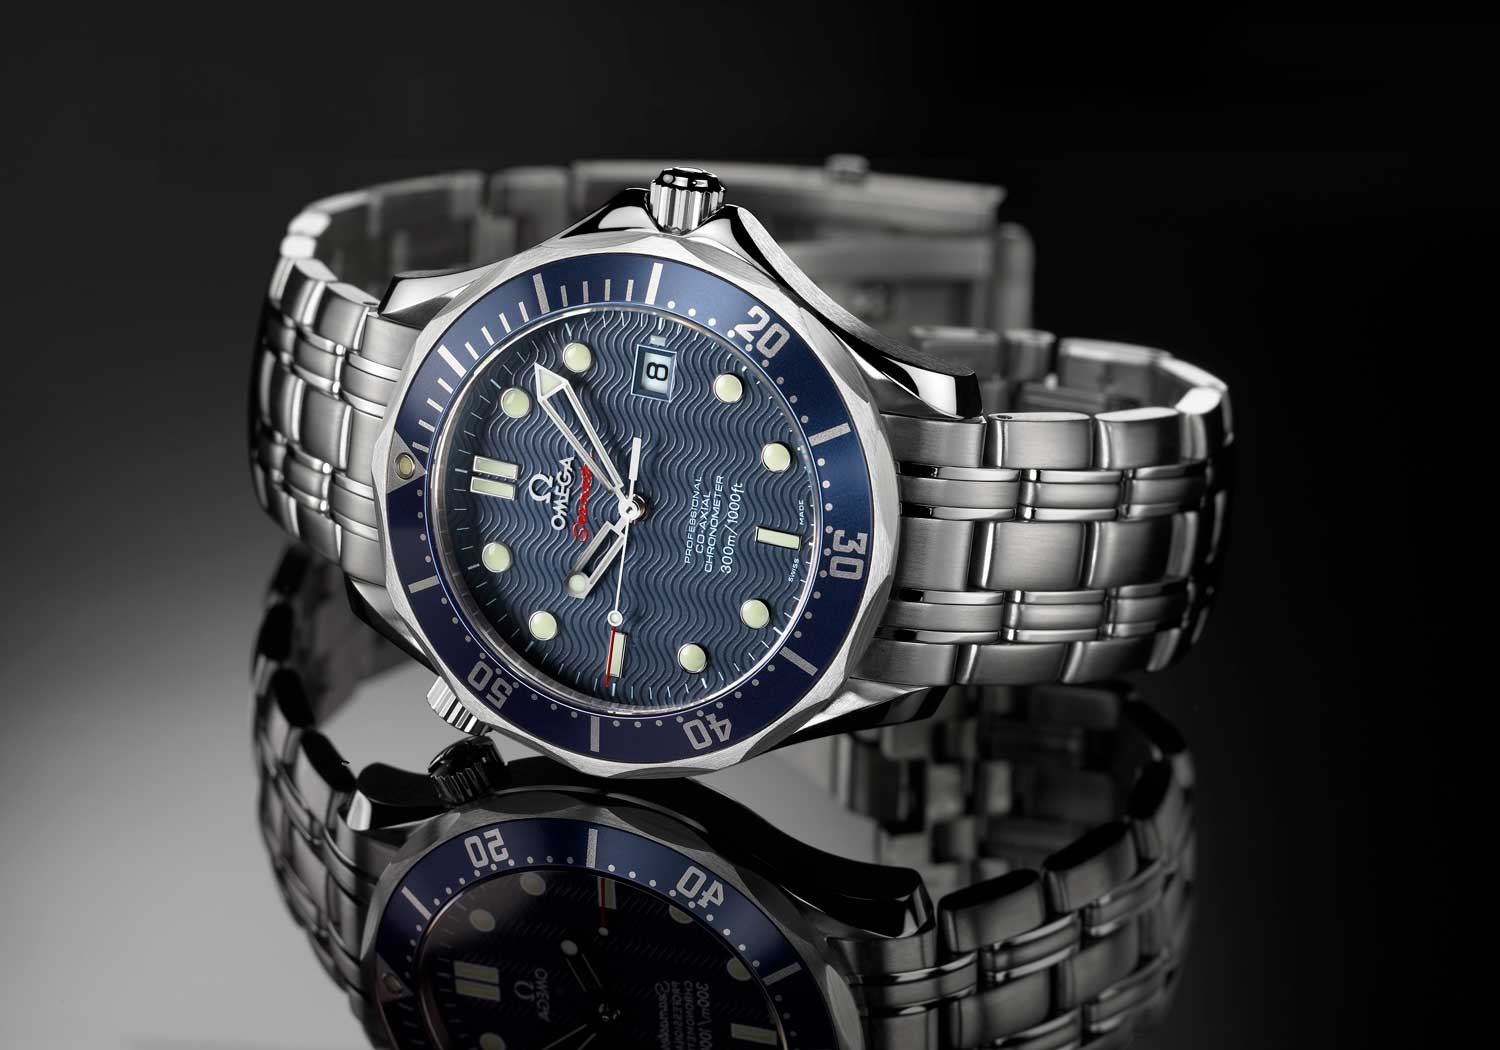 The Seamaster 300m Bond wore in Casino Royale